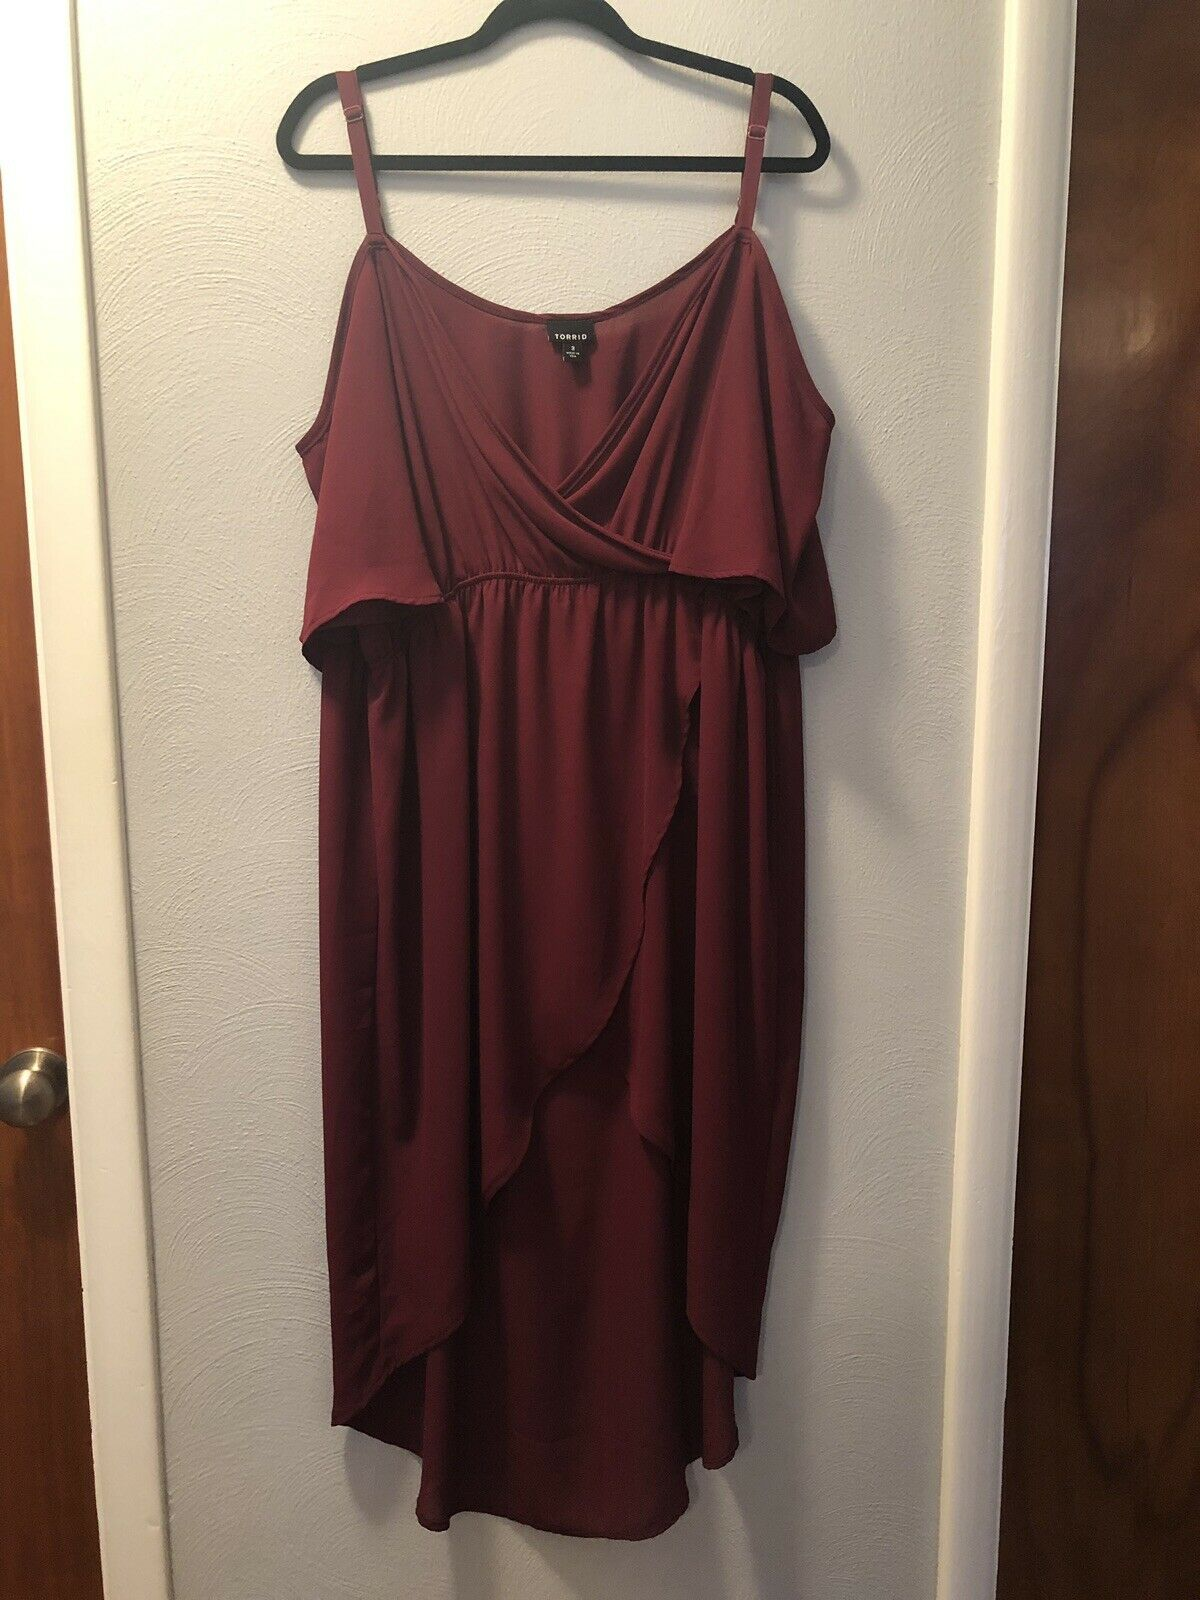 Torrid Womens Plus Size 3 3X Cold Shoulder Long Tunic Shirt Top Red Maroon Wine